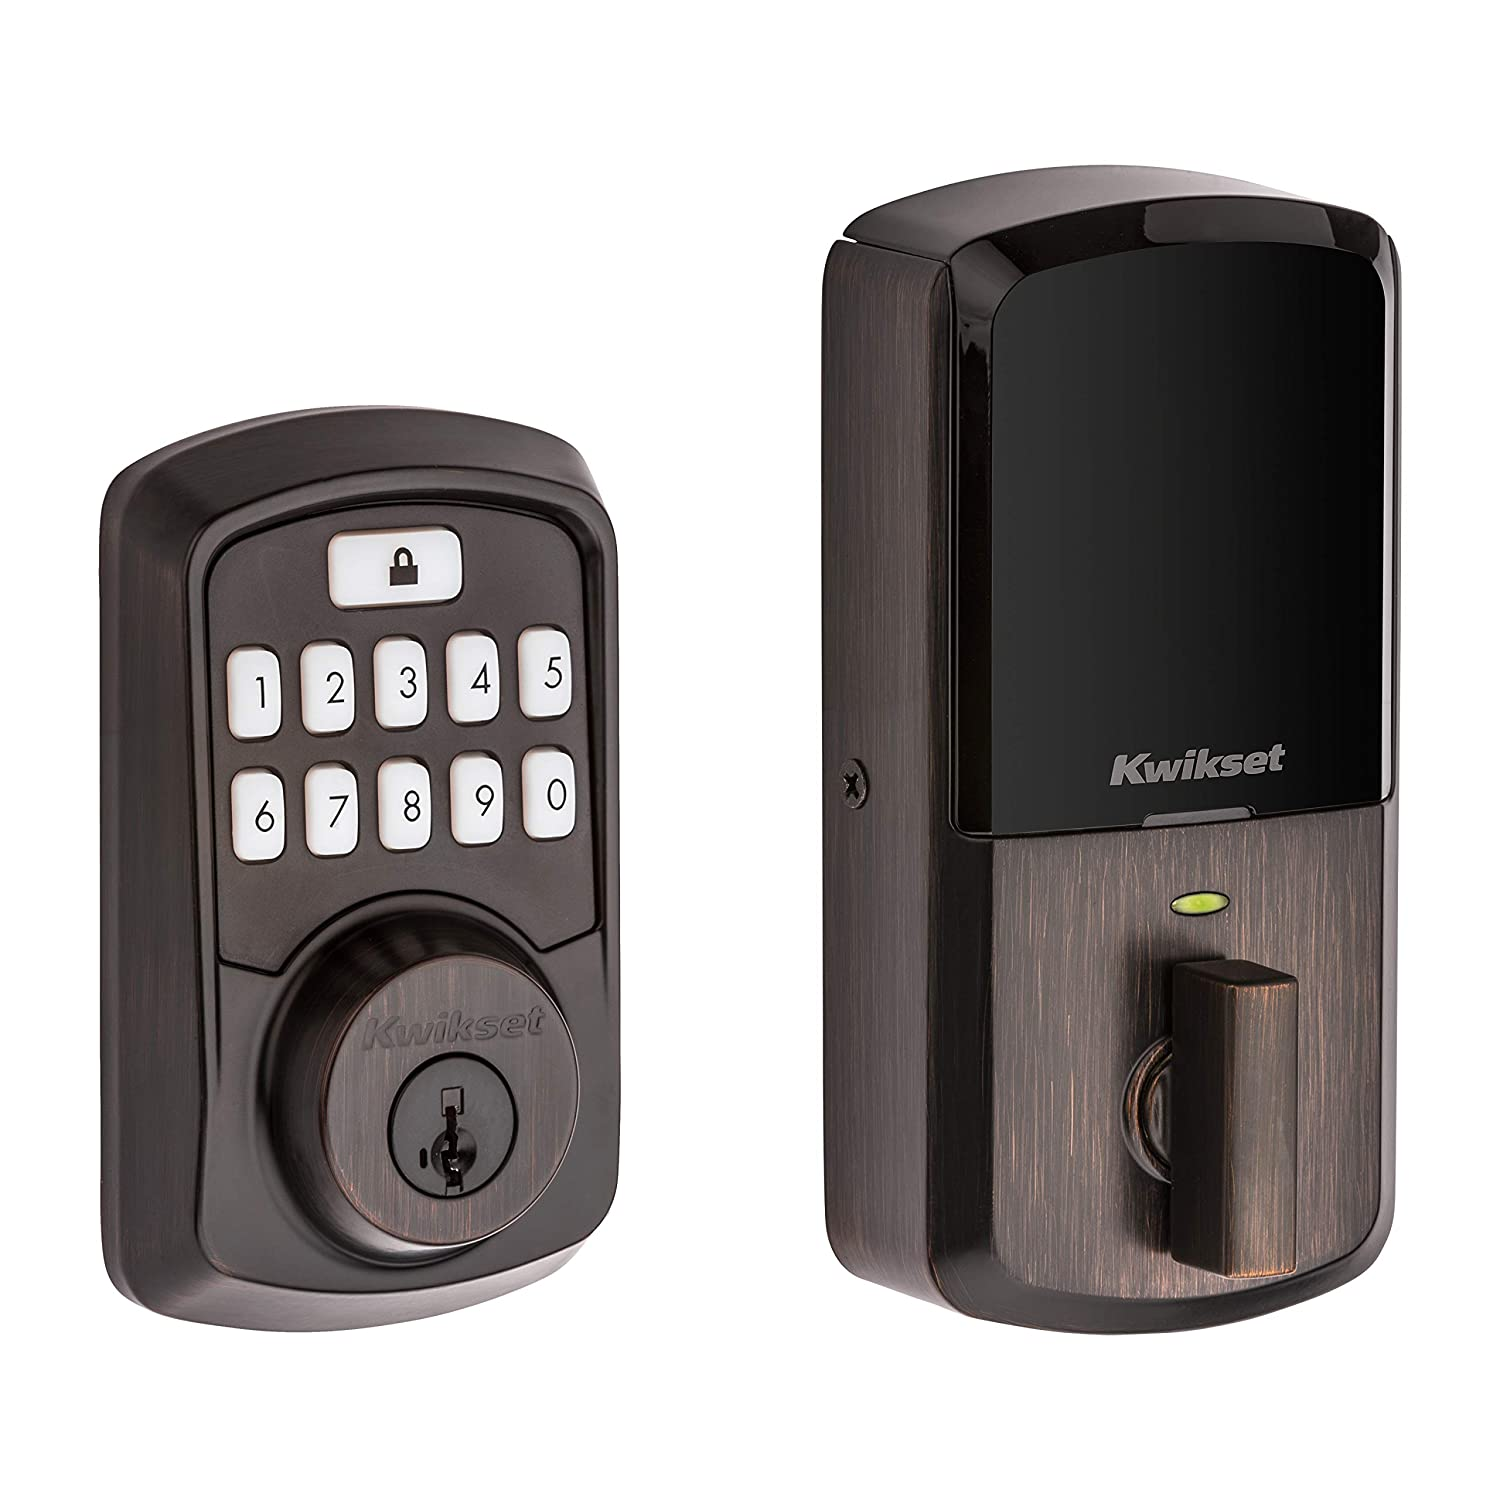 Kwikset 99420-002 Aura Bluetooth Programmable Keypad Door Lock Deadbolt Featuring SmartKey Security, Venetian Bronze